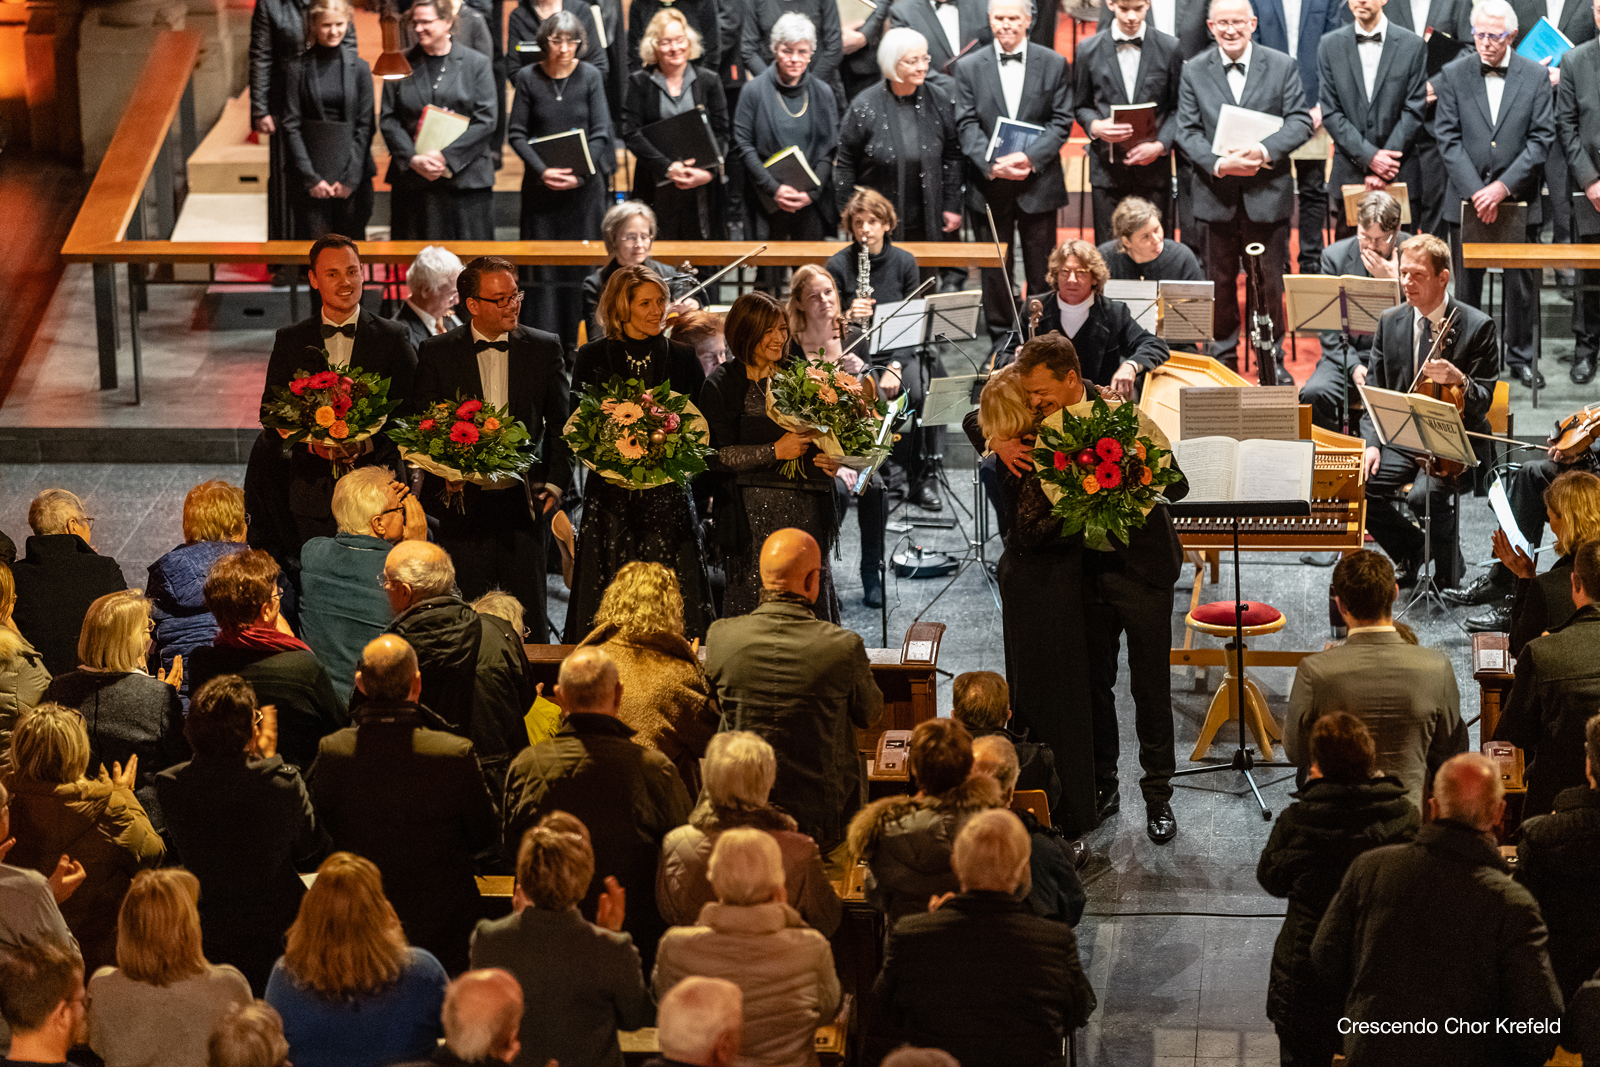 01_20191222_Crescendo_Chor_Krefeld_Messiah_094